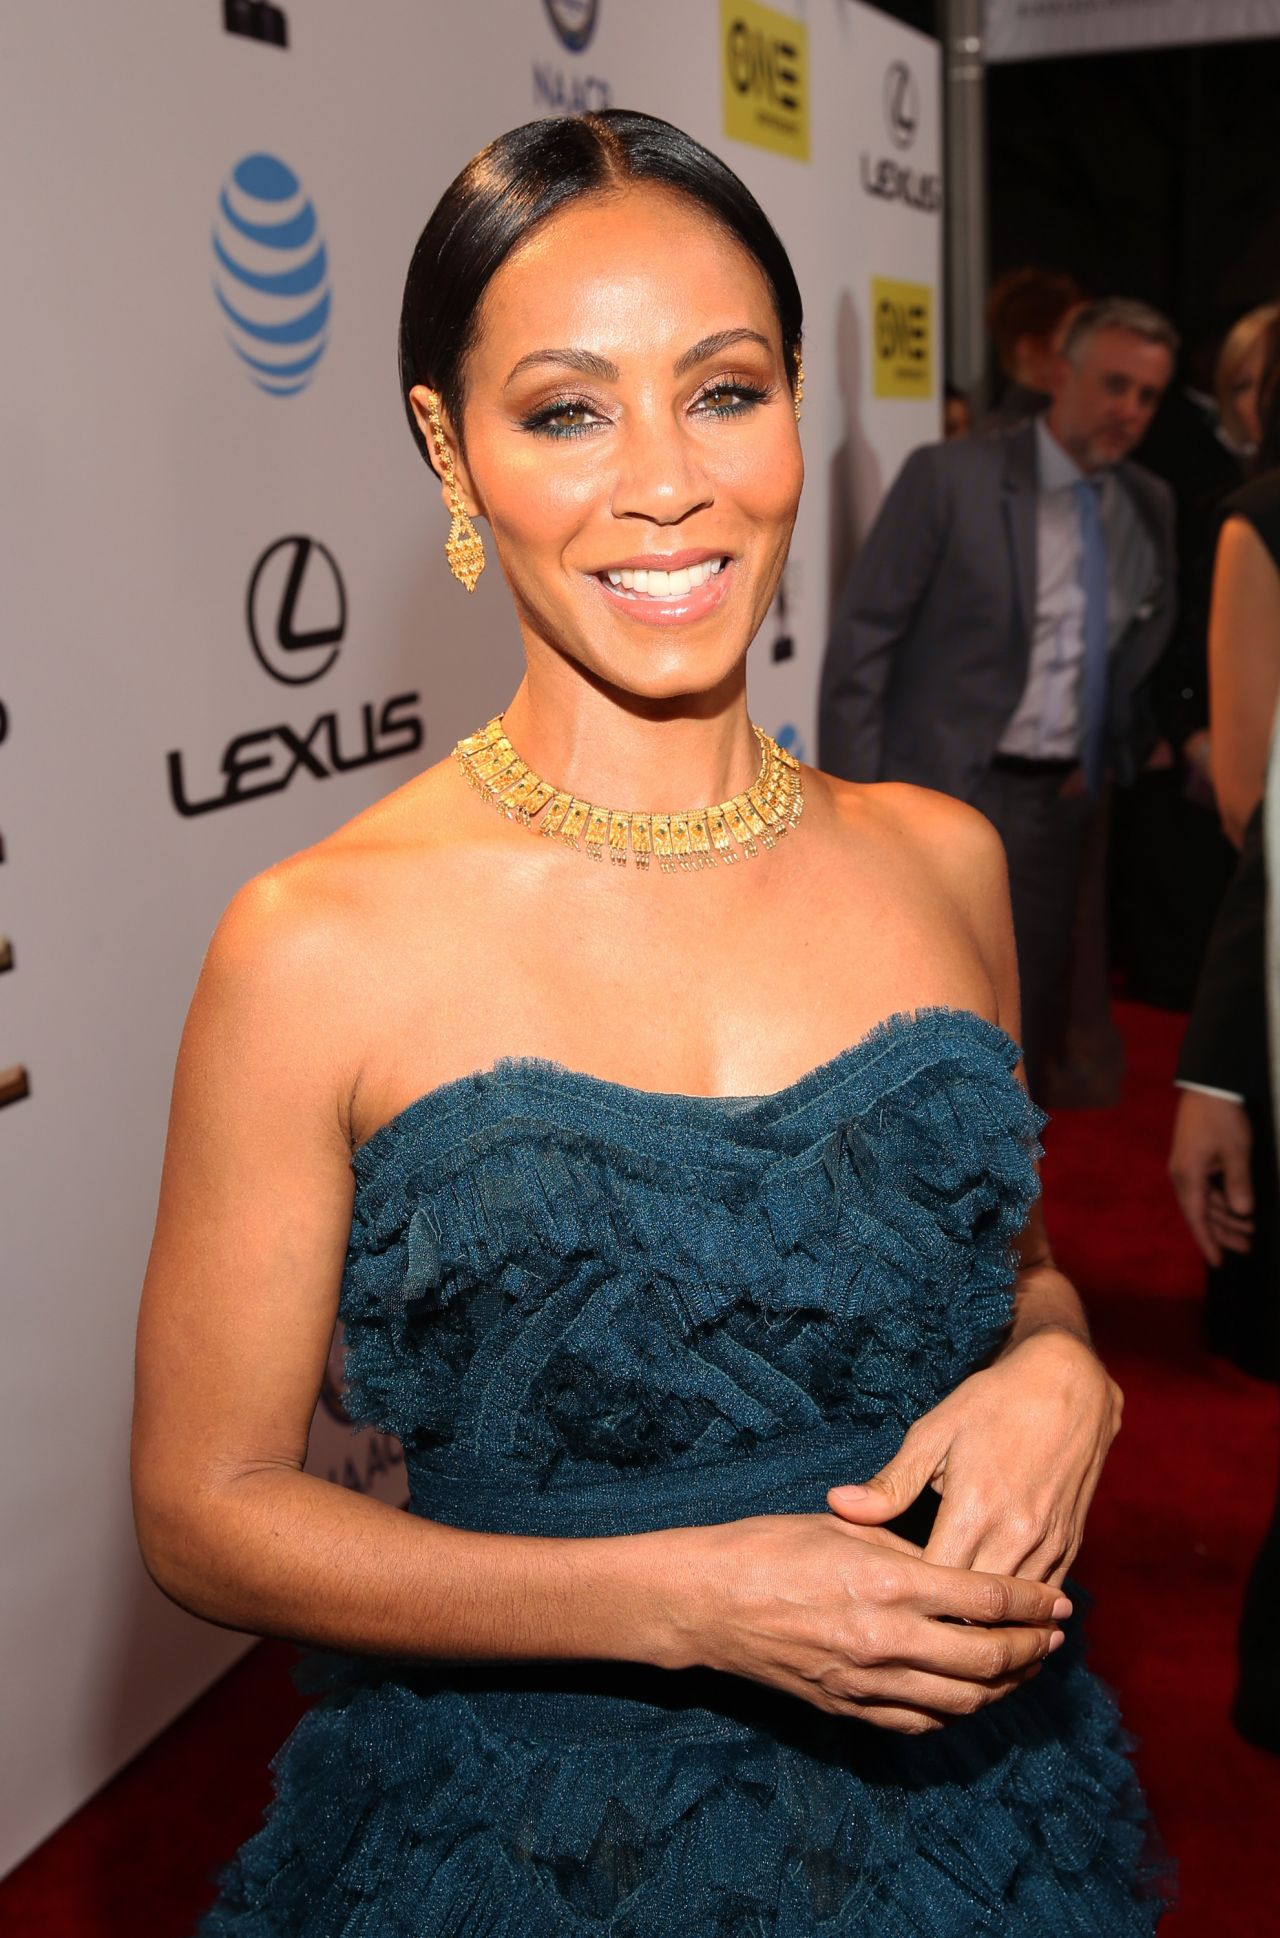 Jada Pinkett Smith Naacp Image Awards 2016 Presented By